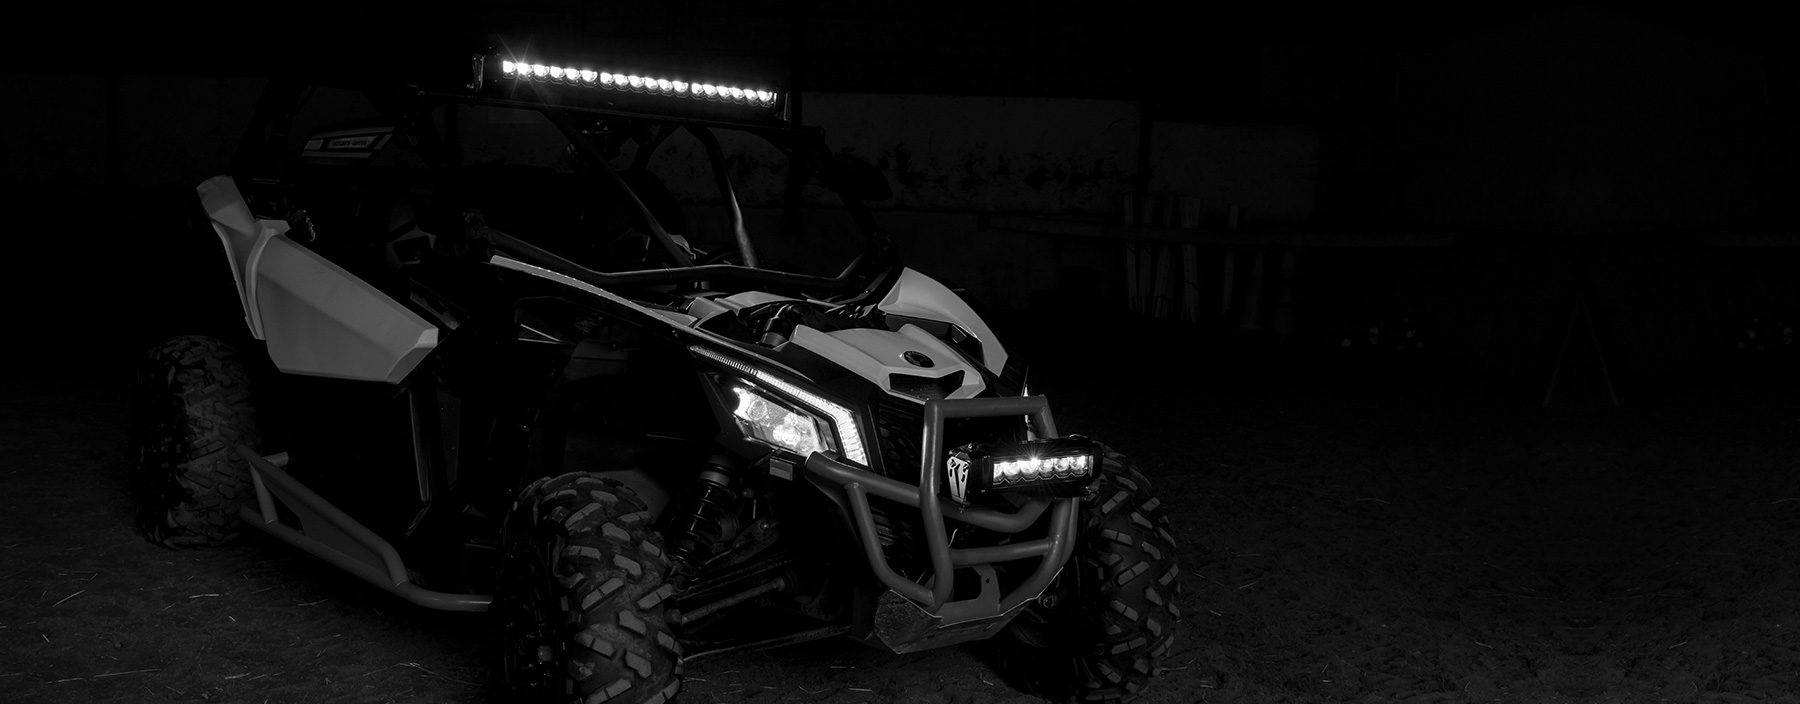 VTT led light bar ATV best lighting offroad side by side